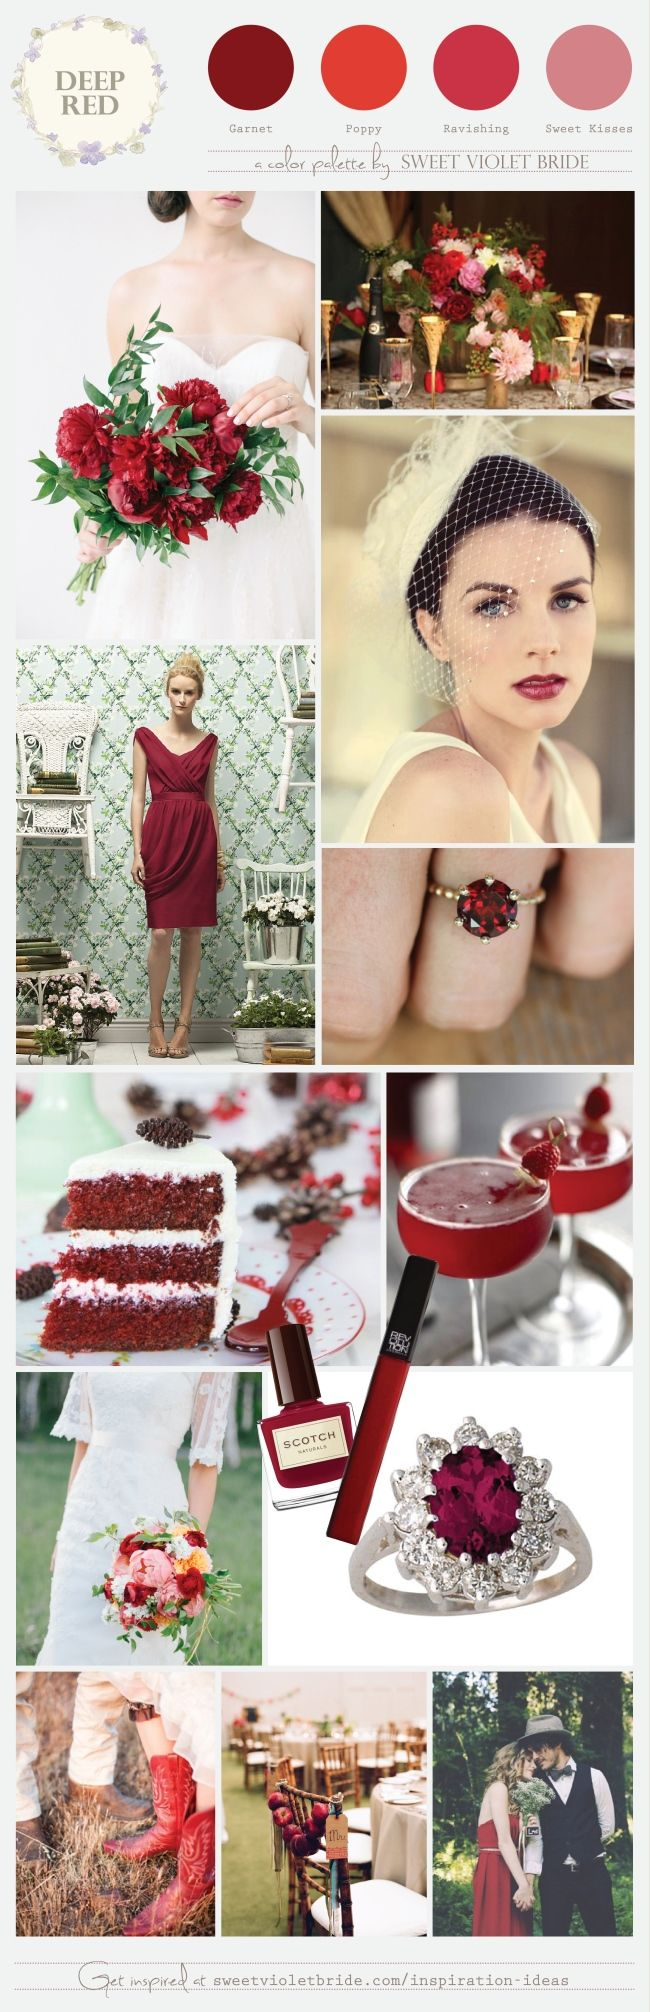 We've been thinking about deep red lately. Maybe it's because January's birthstone is Garnet, or perhaps it's because Valentine's Day is around the corner. Of course, fall and winter weddings are awash in gorgeous shades of red, from apples to holly berries. This palette can be bold or sweet, light or luscious,